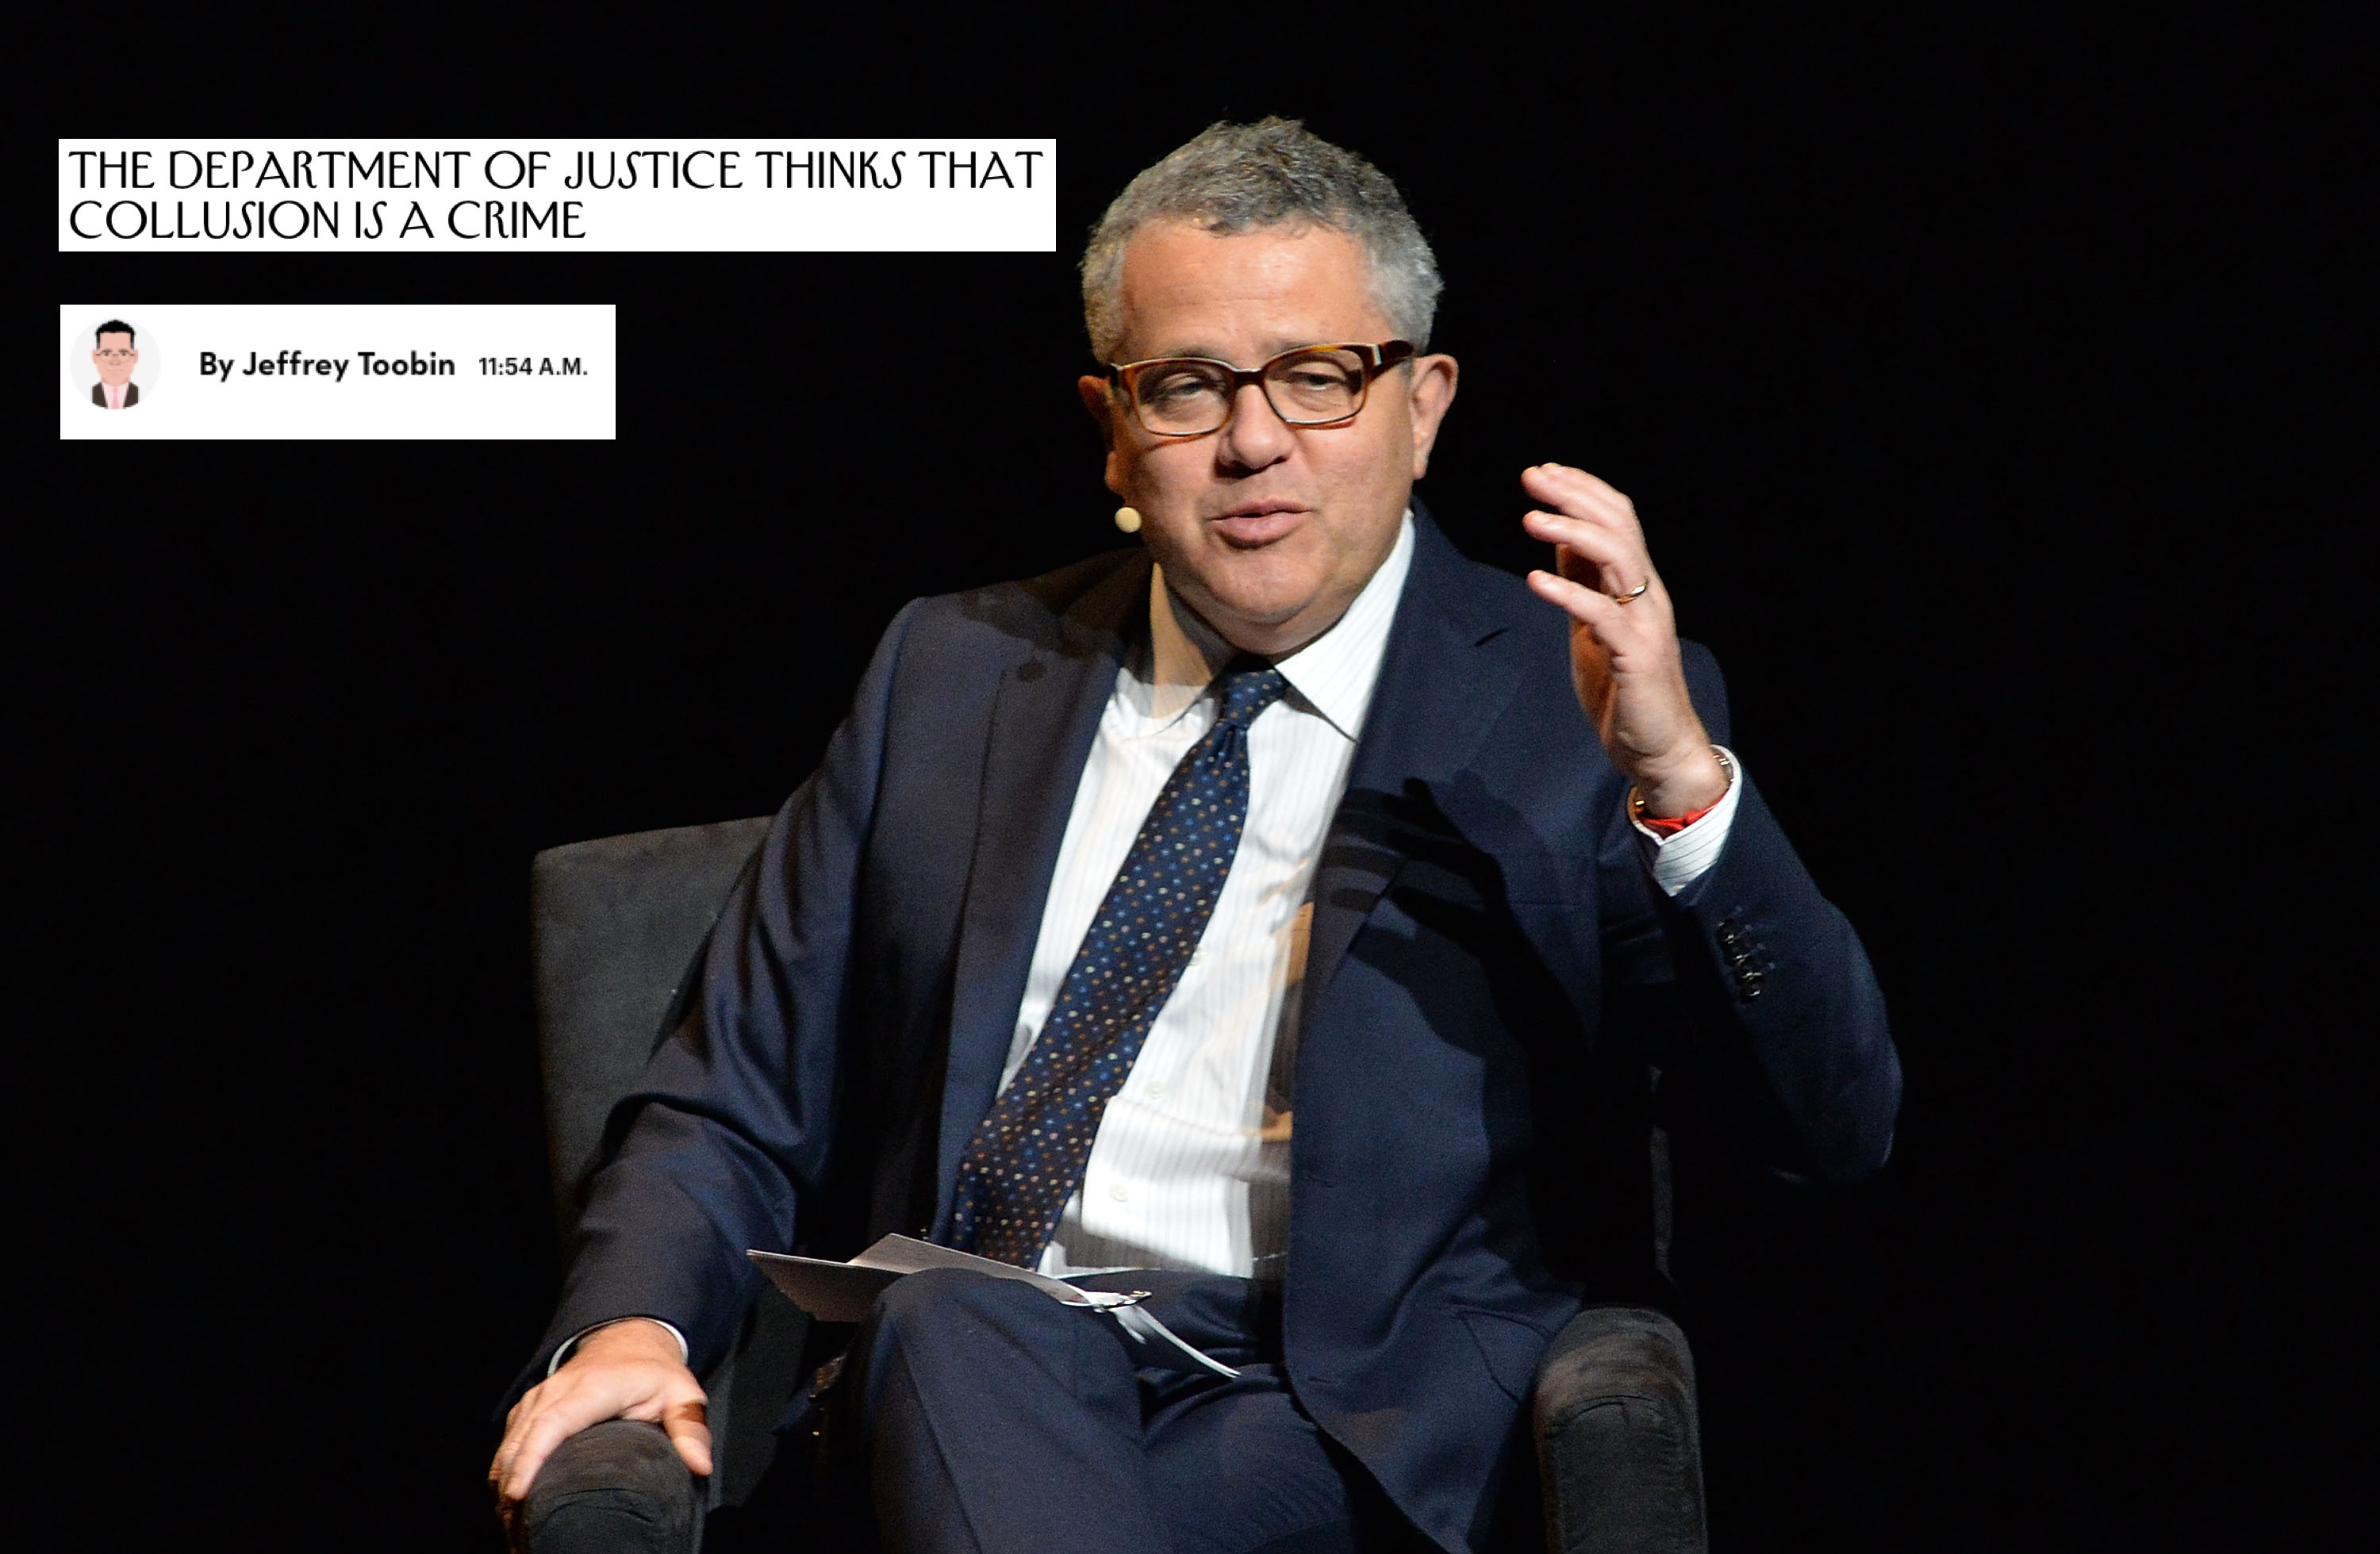 Does Jeffrey Toobin Know How To Read Basic Law Or English?